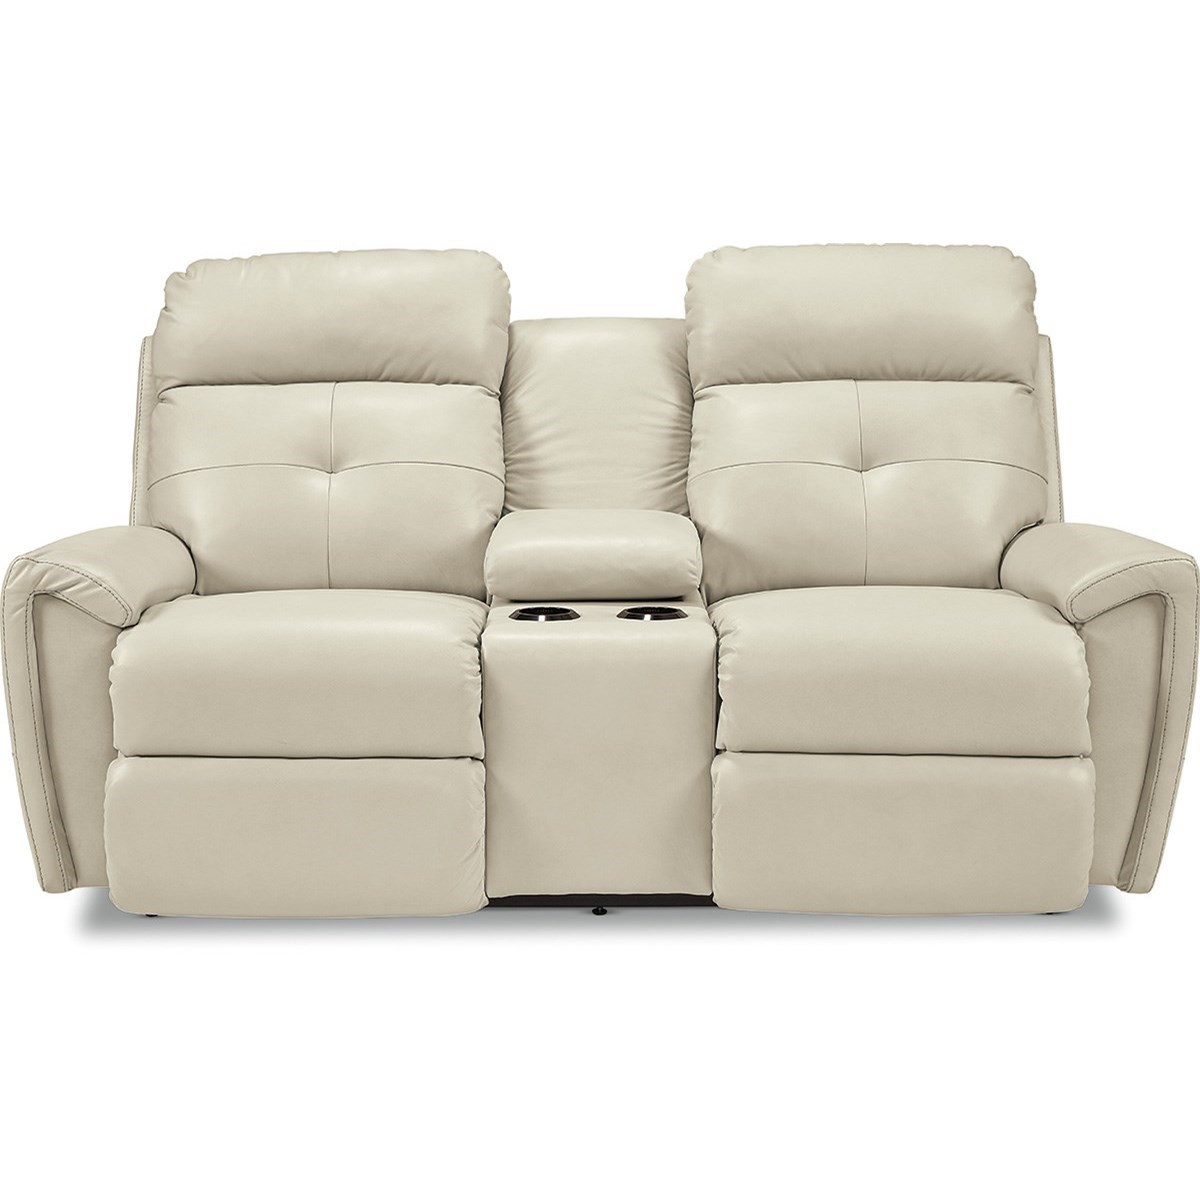 Contemporary Power Reclining Console Loveseat with USB Charging Ports and Power Tilt Headrests